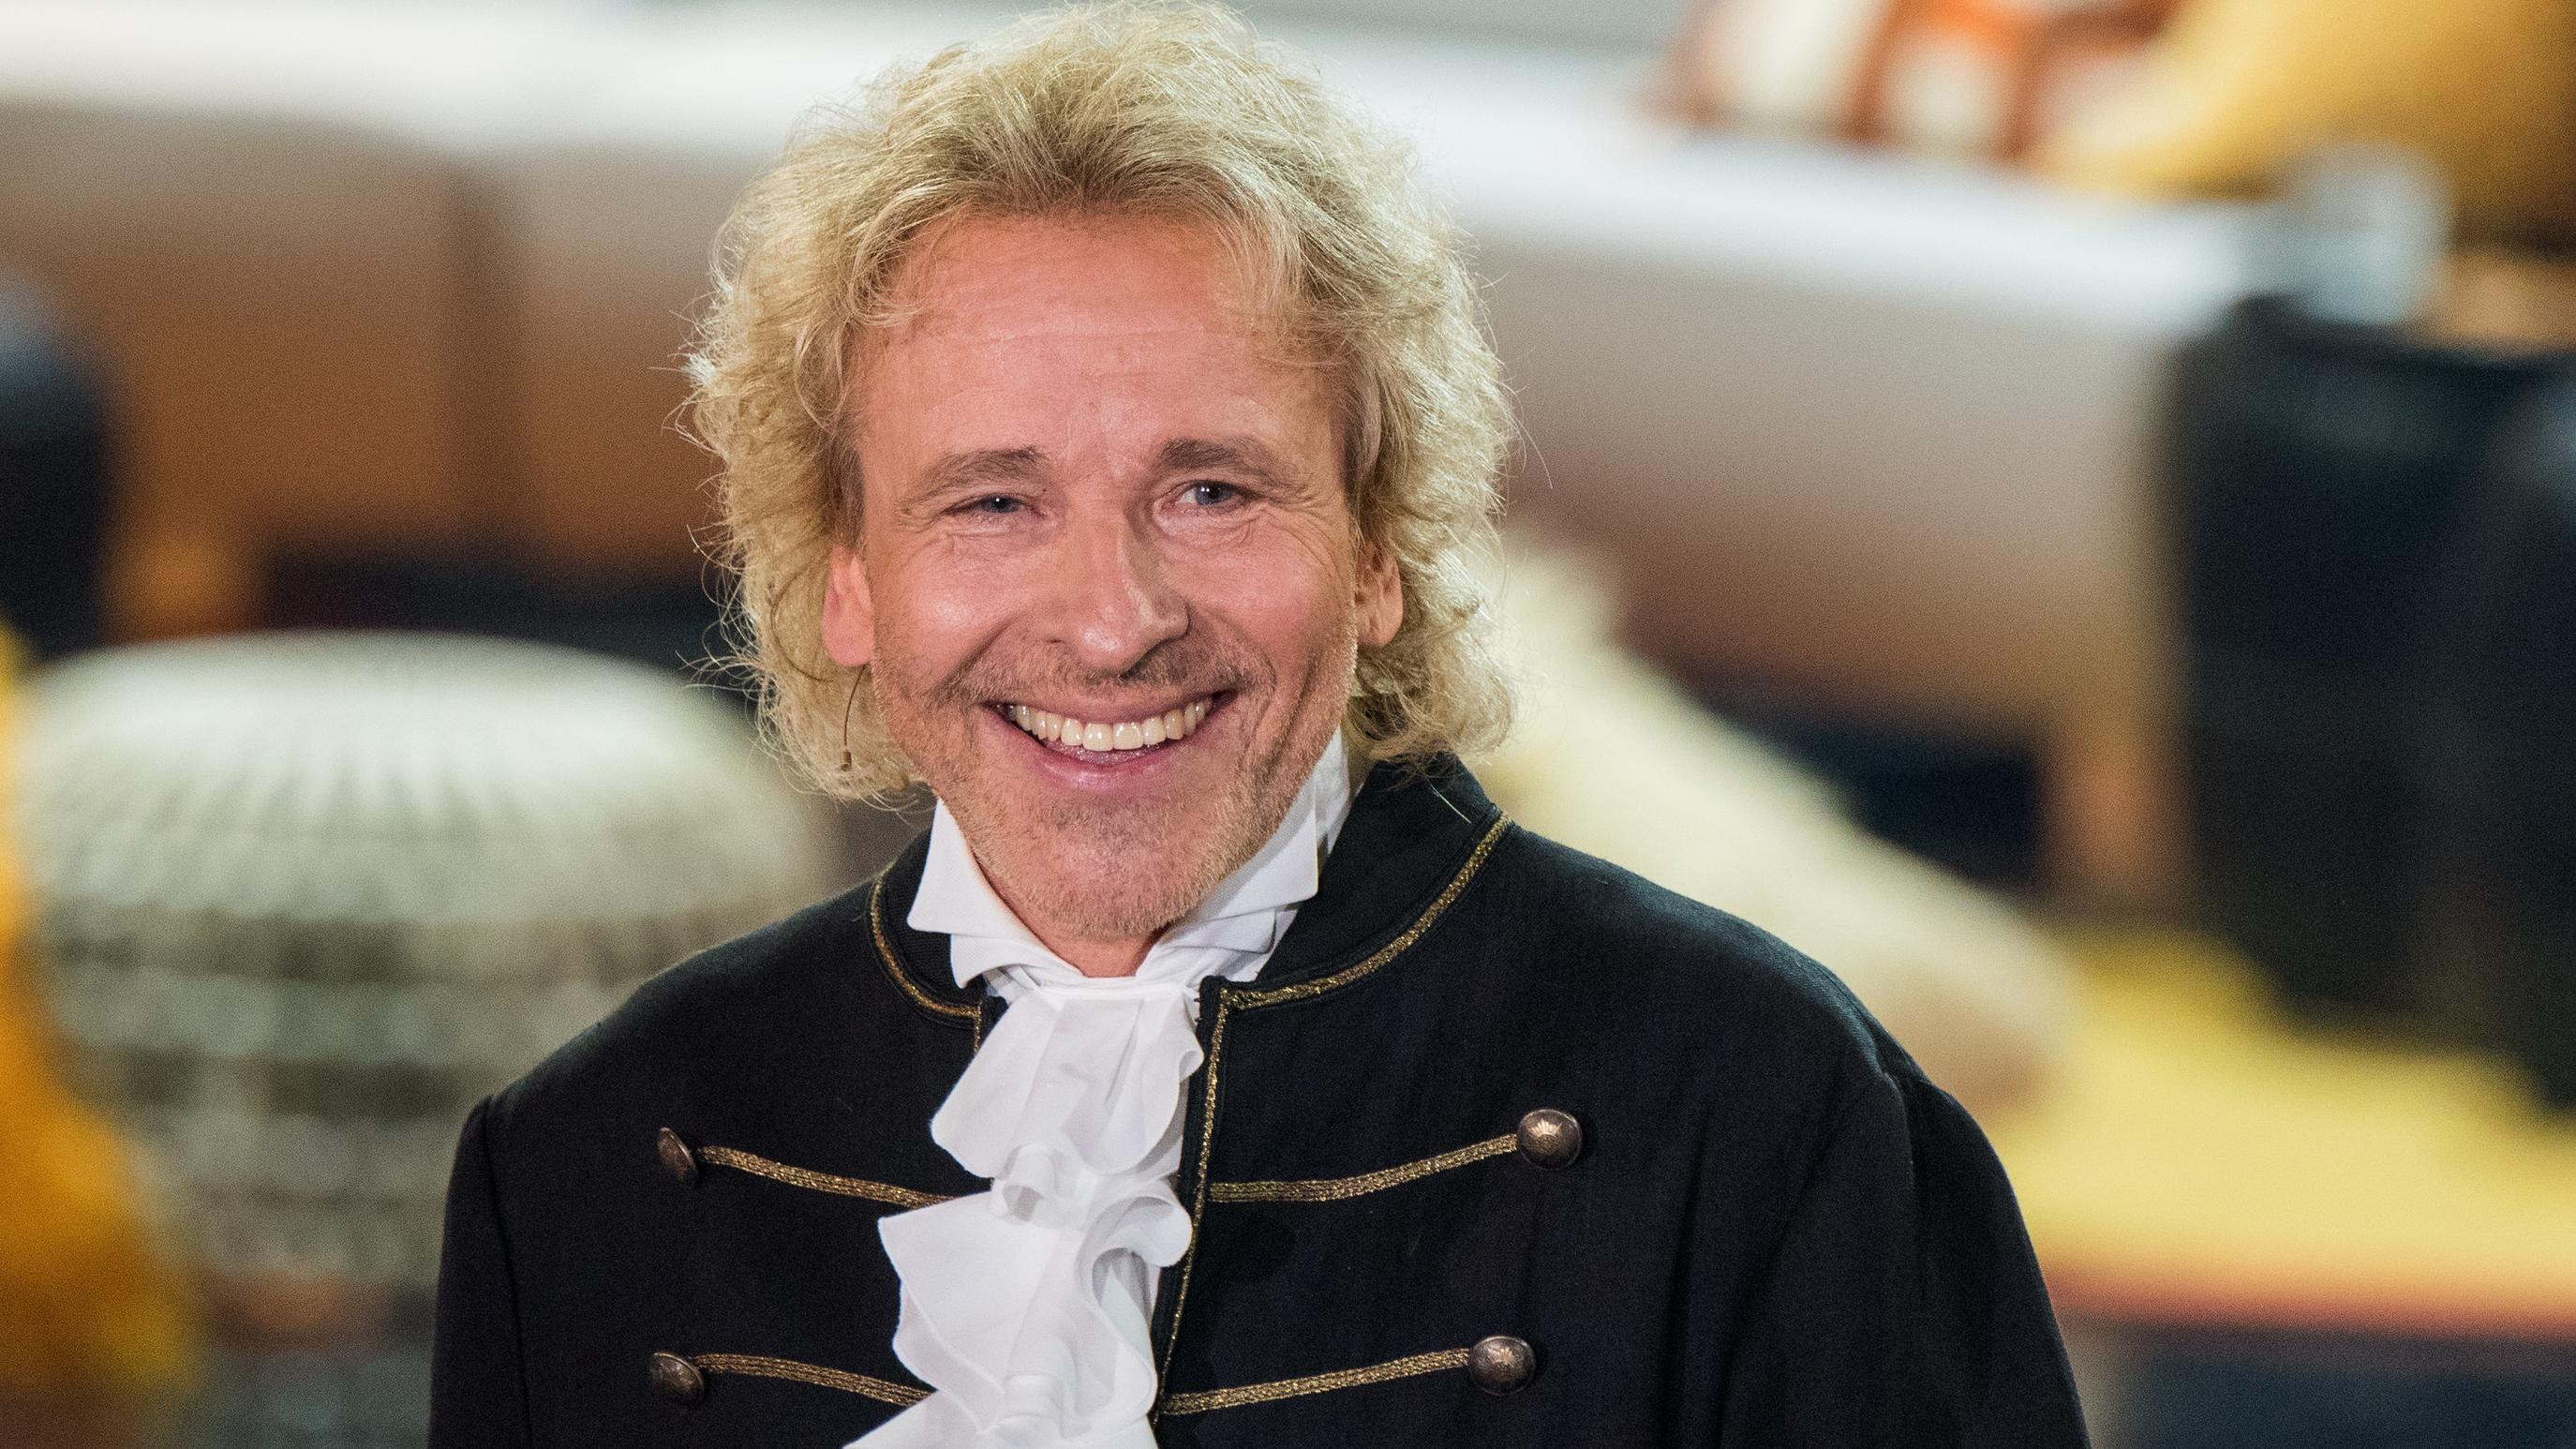 Thomas Gottschalk im September 2018 in Hamburg